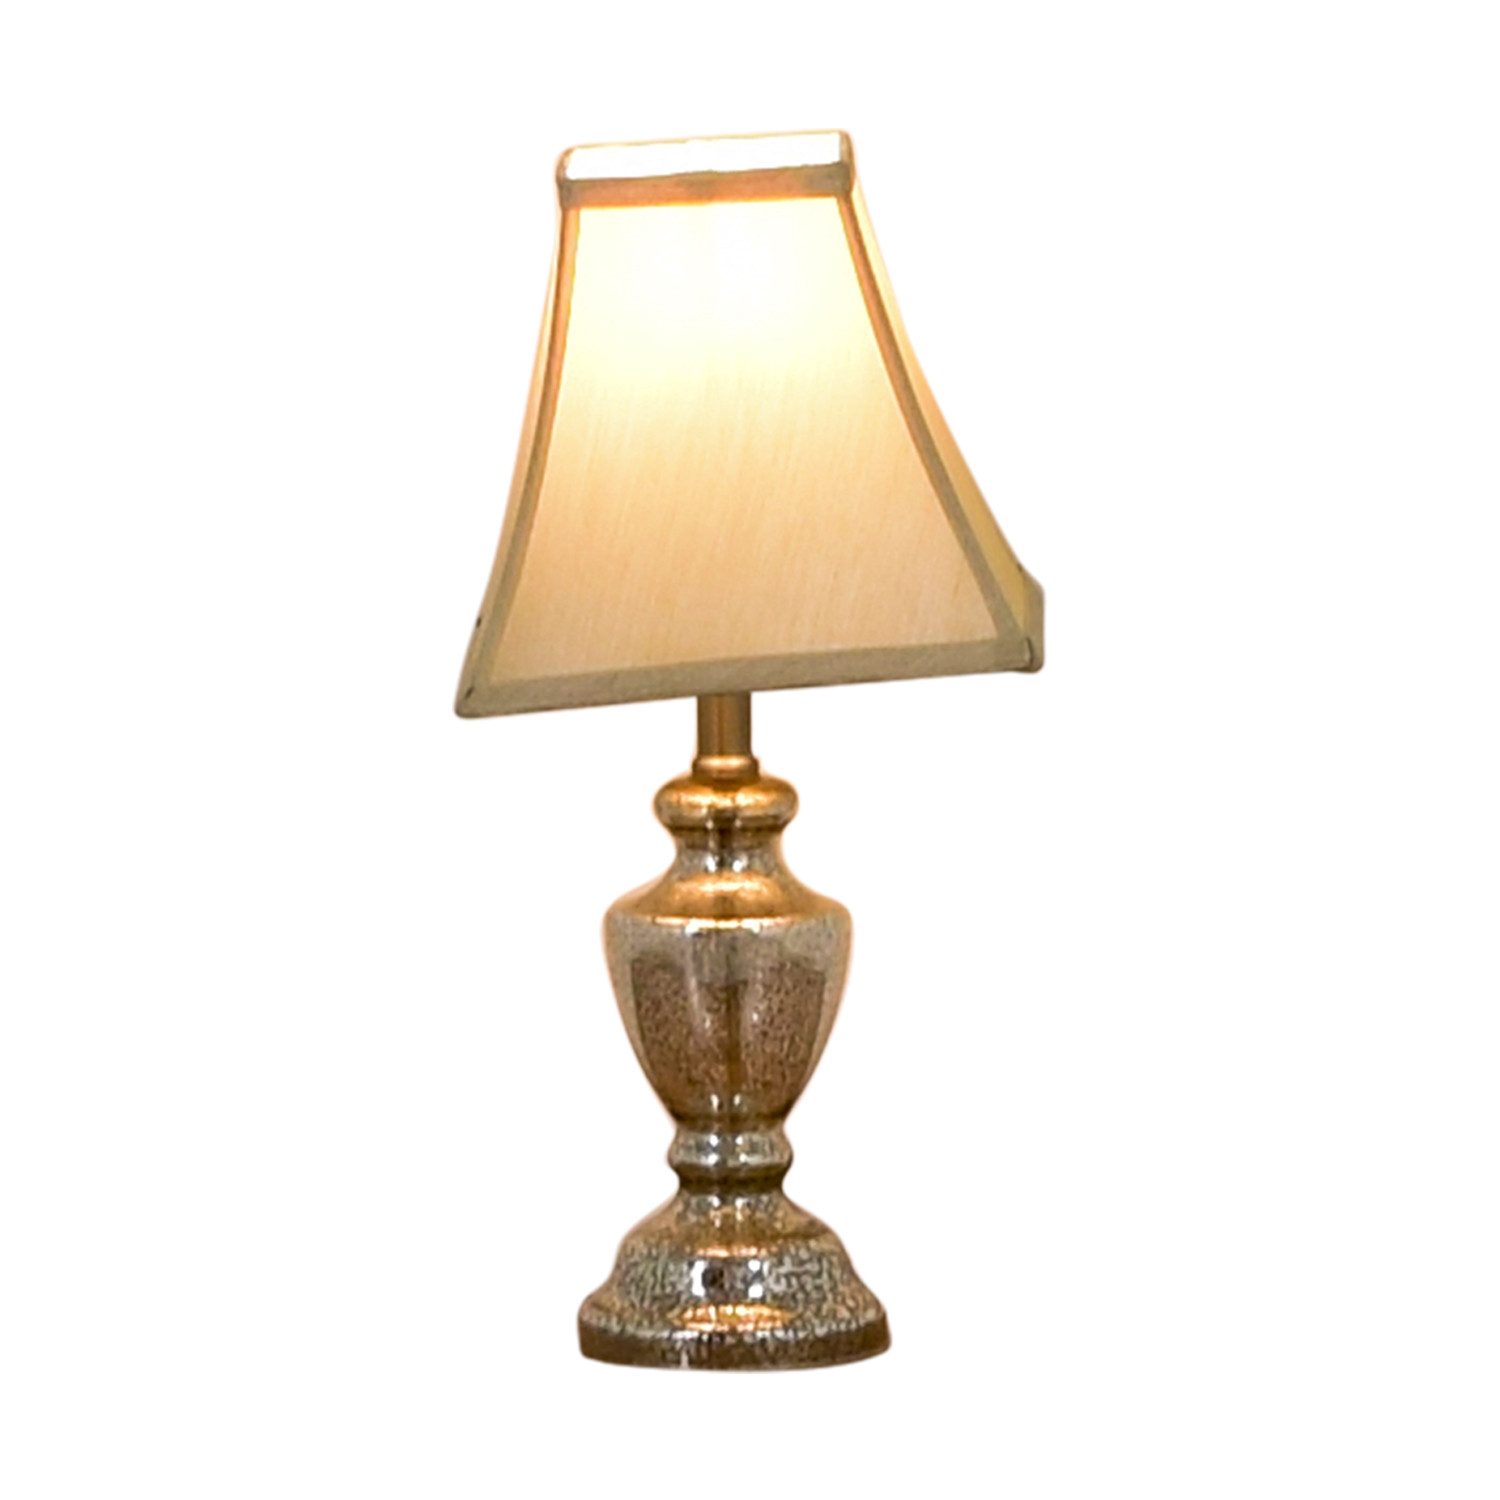 Best ideas about Bed Bath And Beyond Desk Lamp . Save or Pin Lamps Used Lamps for sale Now.